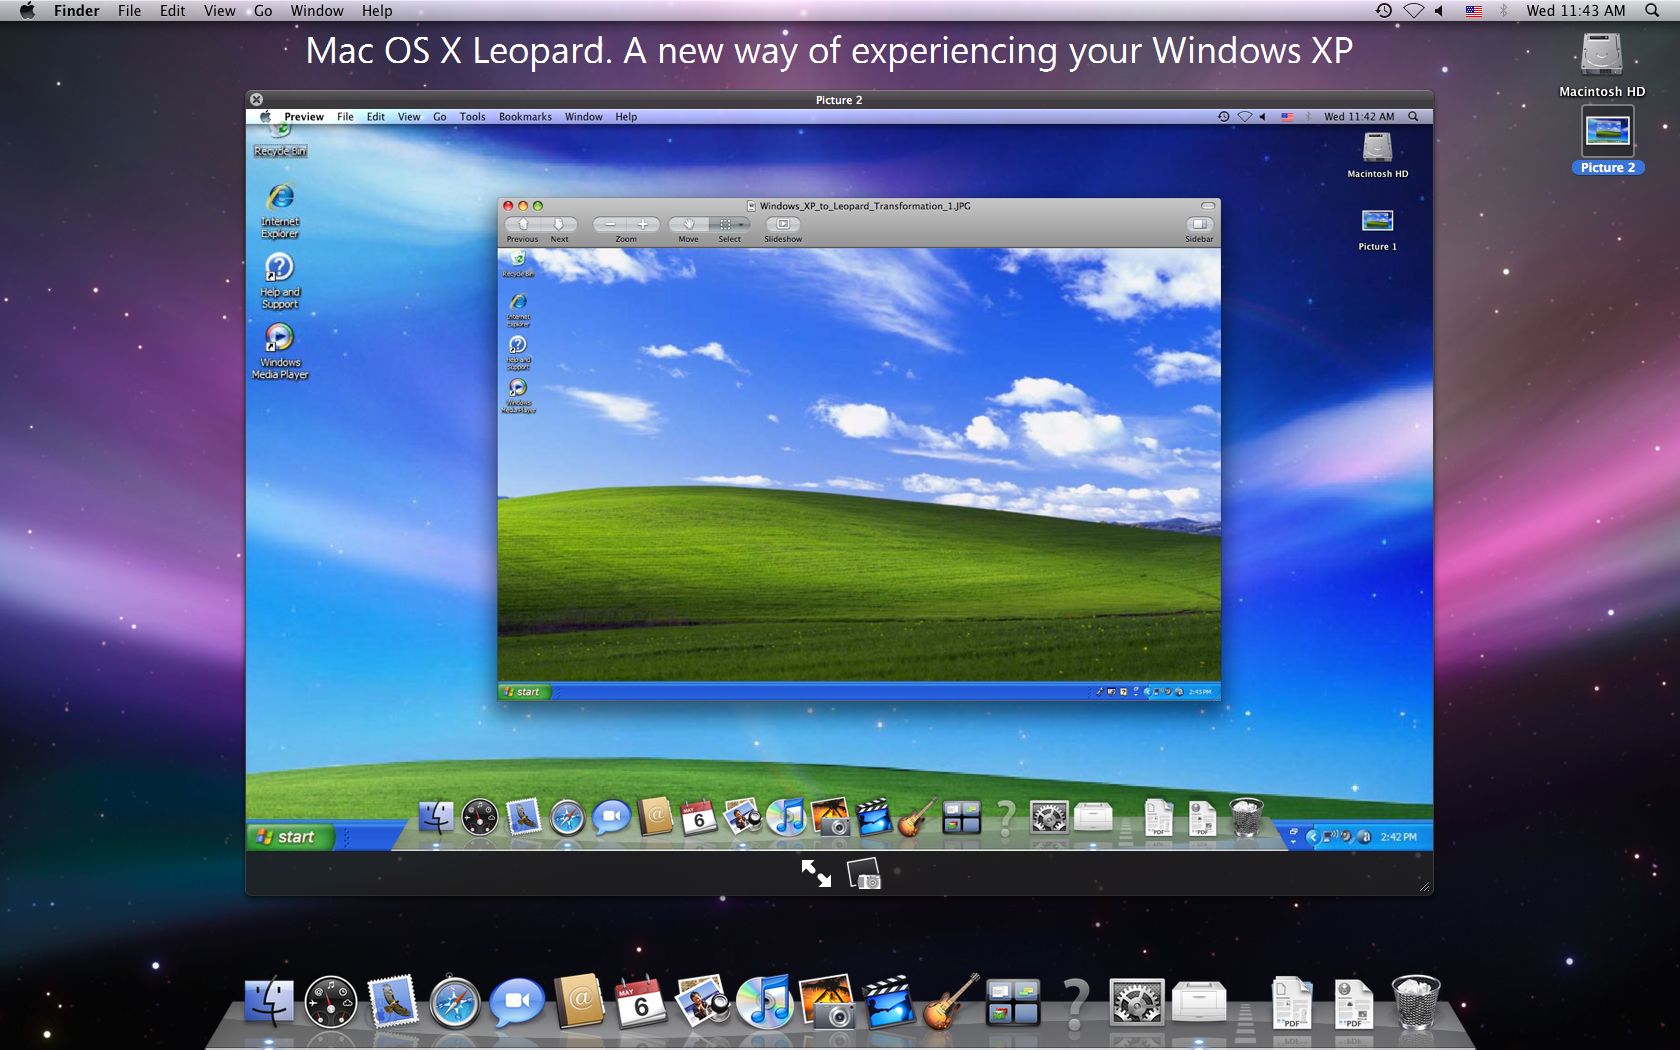 Transform winxp to mac os x by ausrif on deviantart for Innenarchitektur mac os x